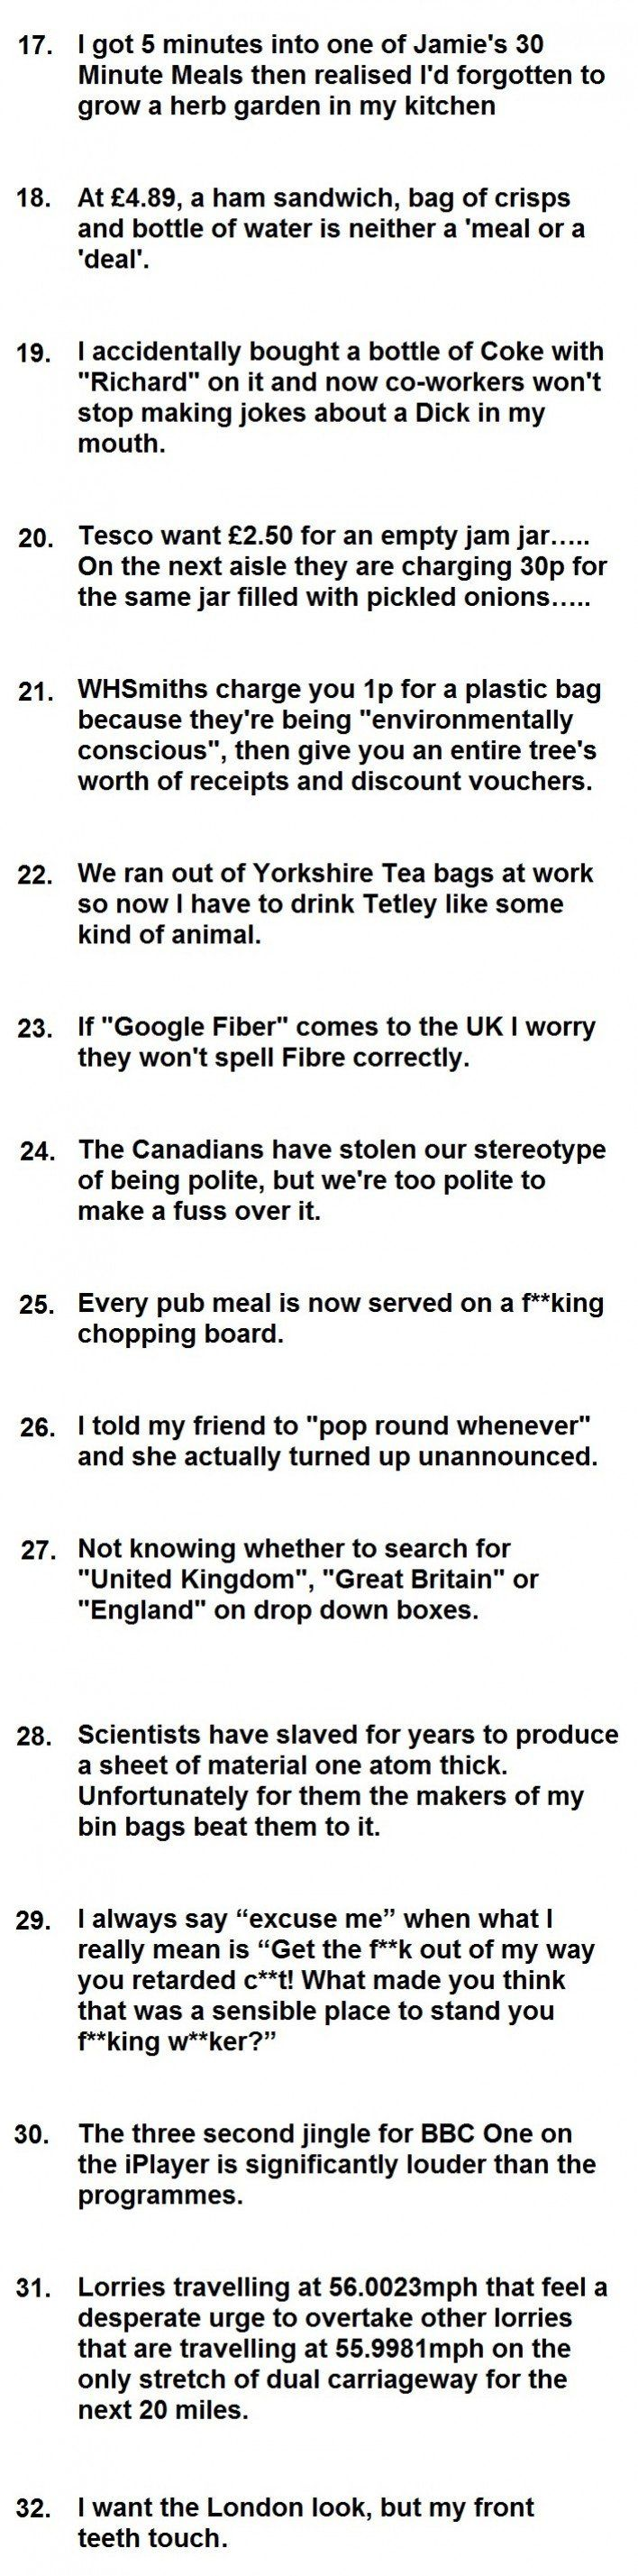 32 problems British people have to deal with in 2014